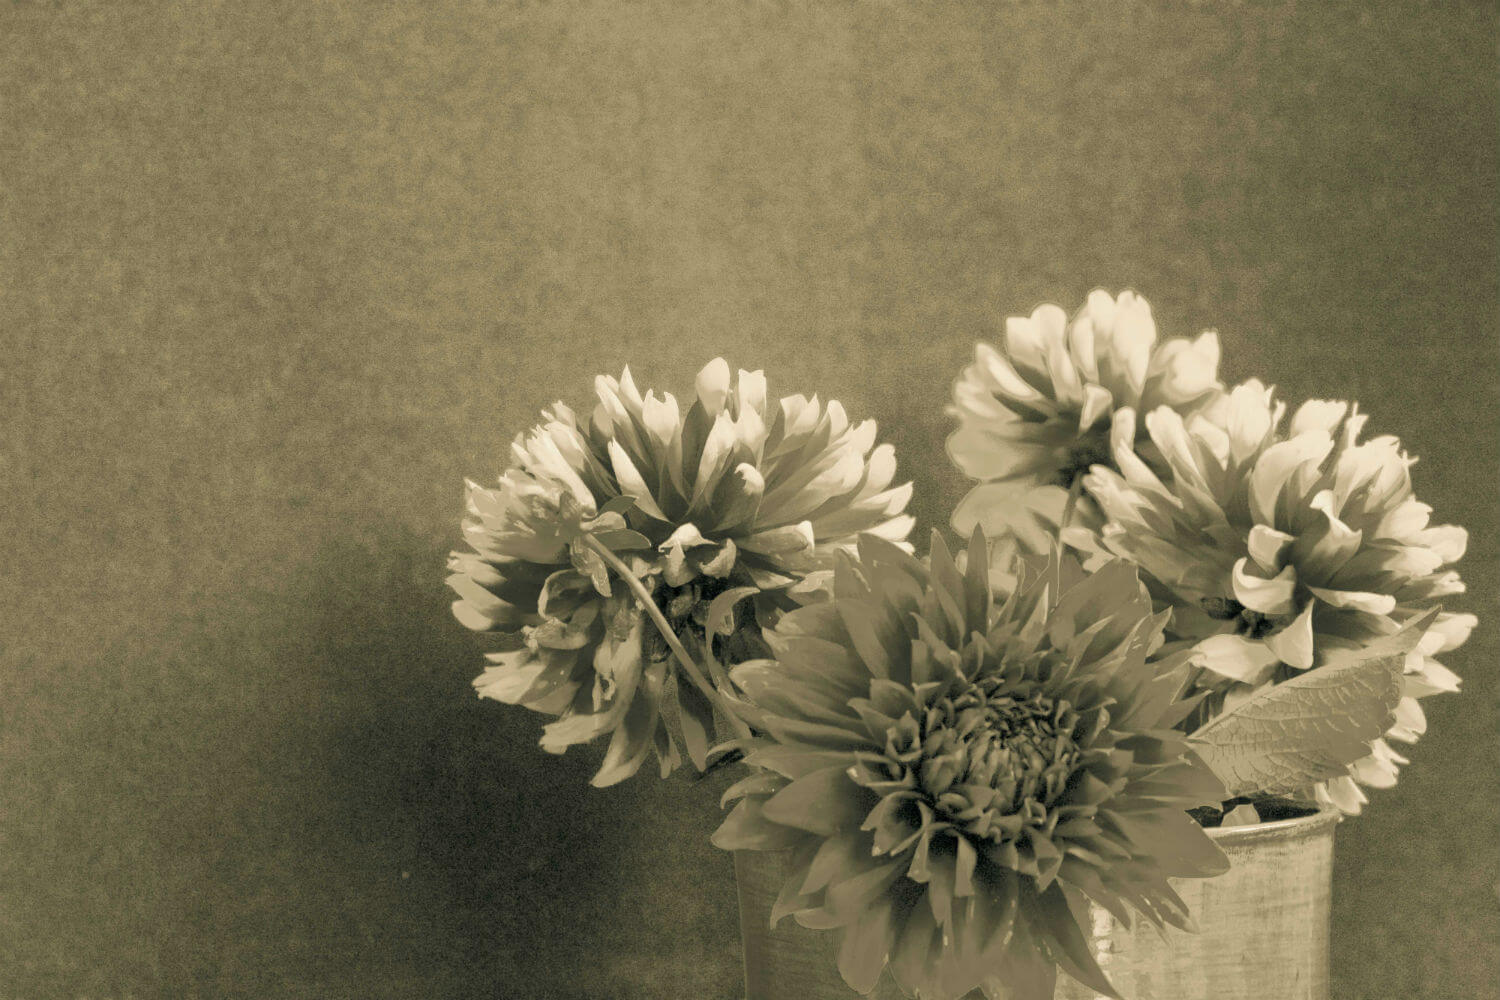 "Floral Study I, 20"" x 24"" sepia flowers in vase liz fiedorek fine art photography ny rhode island"